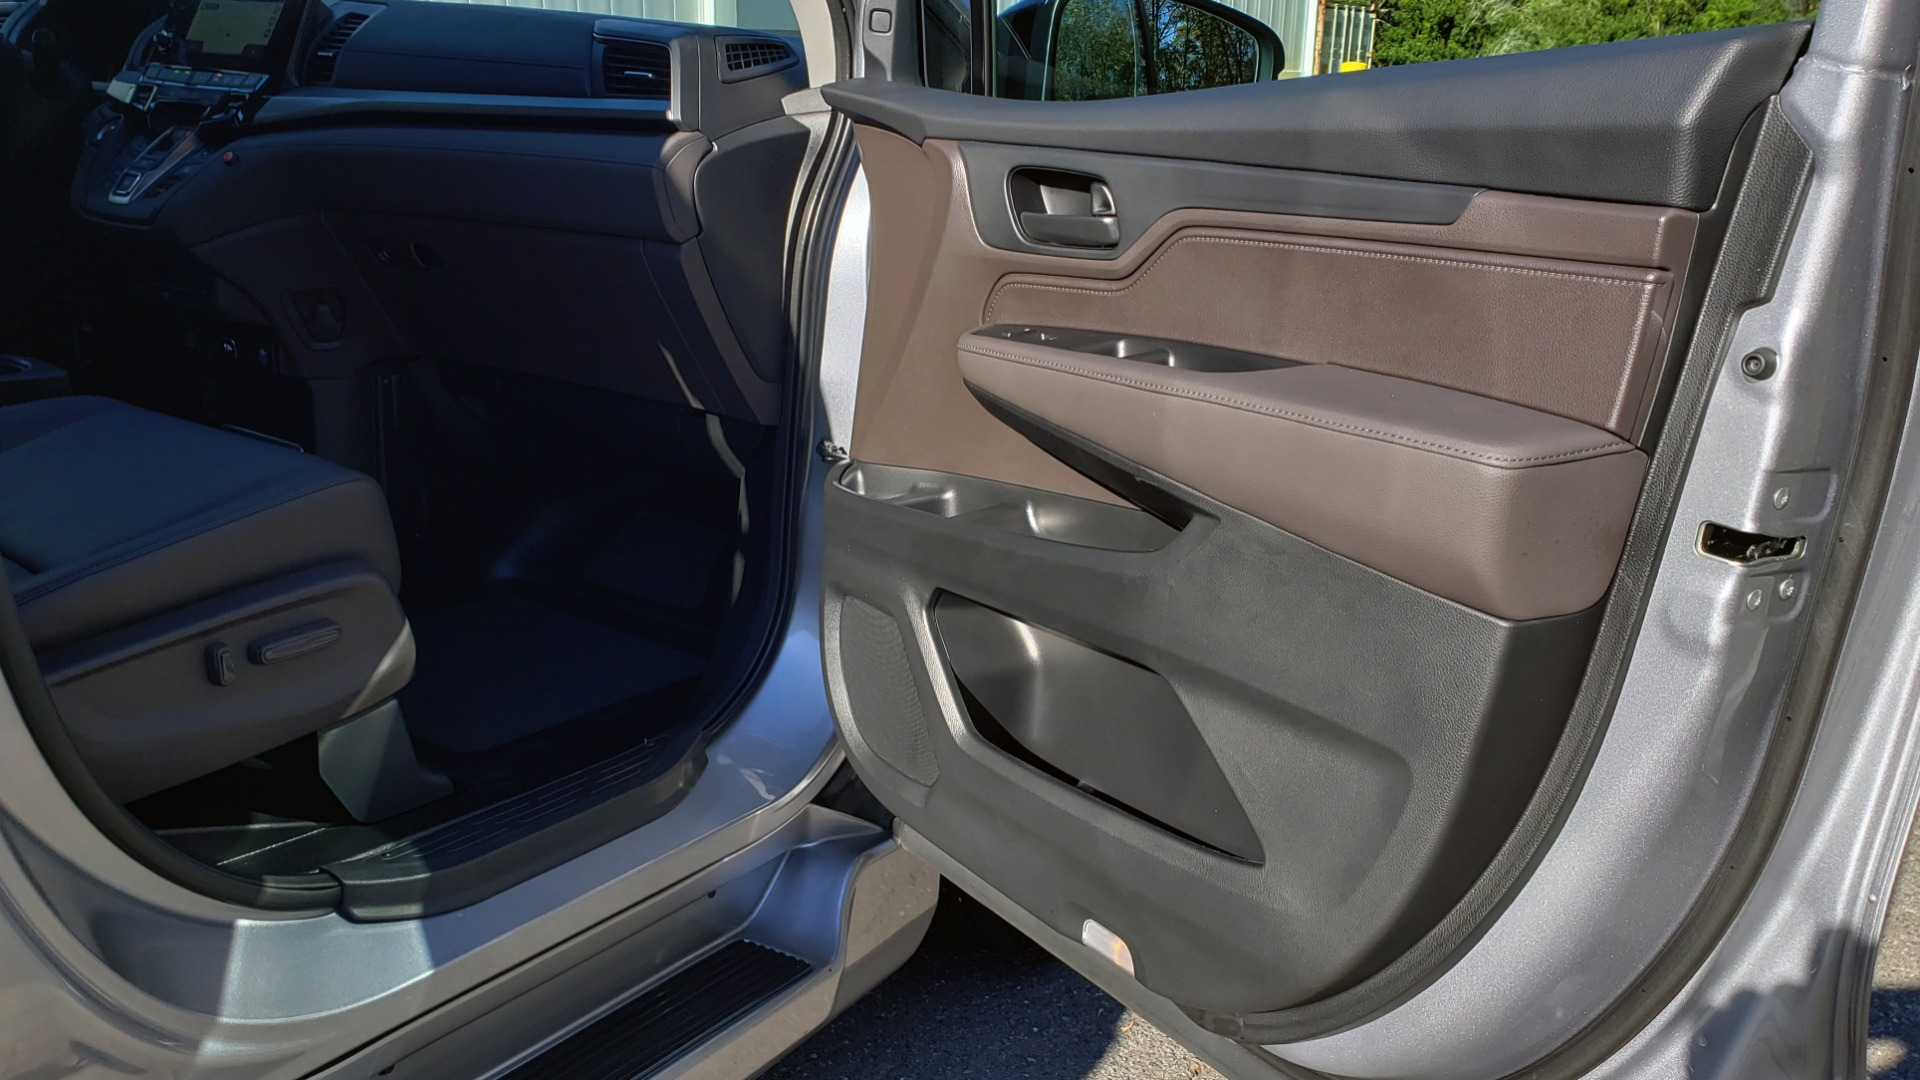 Used 2019 Honda ODYSSEY EX-L BRAUNABILITY / NAV / RES / LKA / BLUE-RAY / SUNROOF / REARVIEW for sale Sold at Formula Imports in Charlotte NC 28227 36